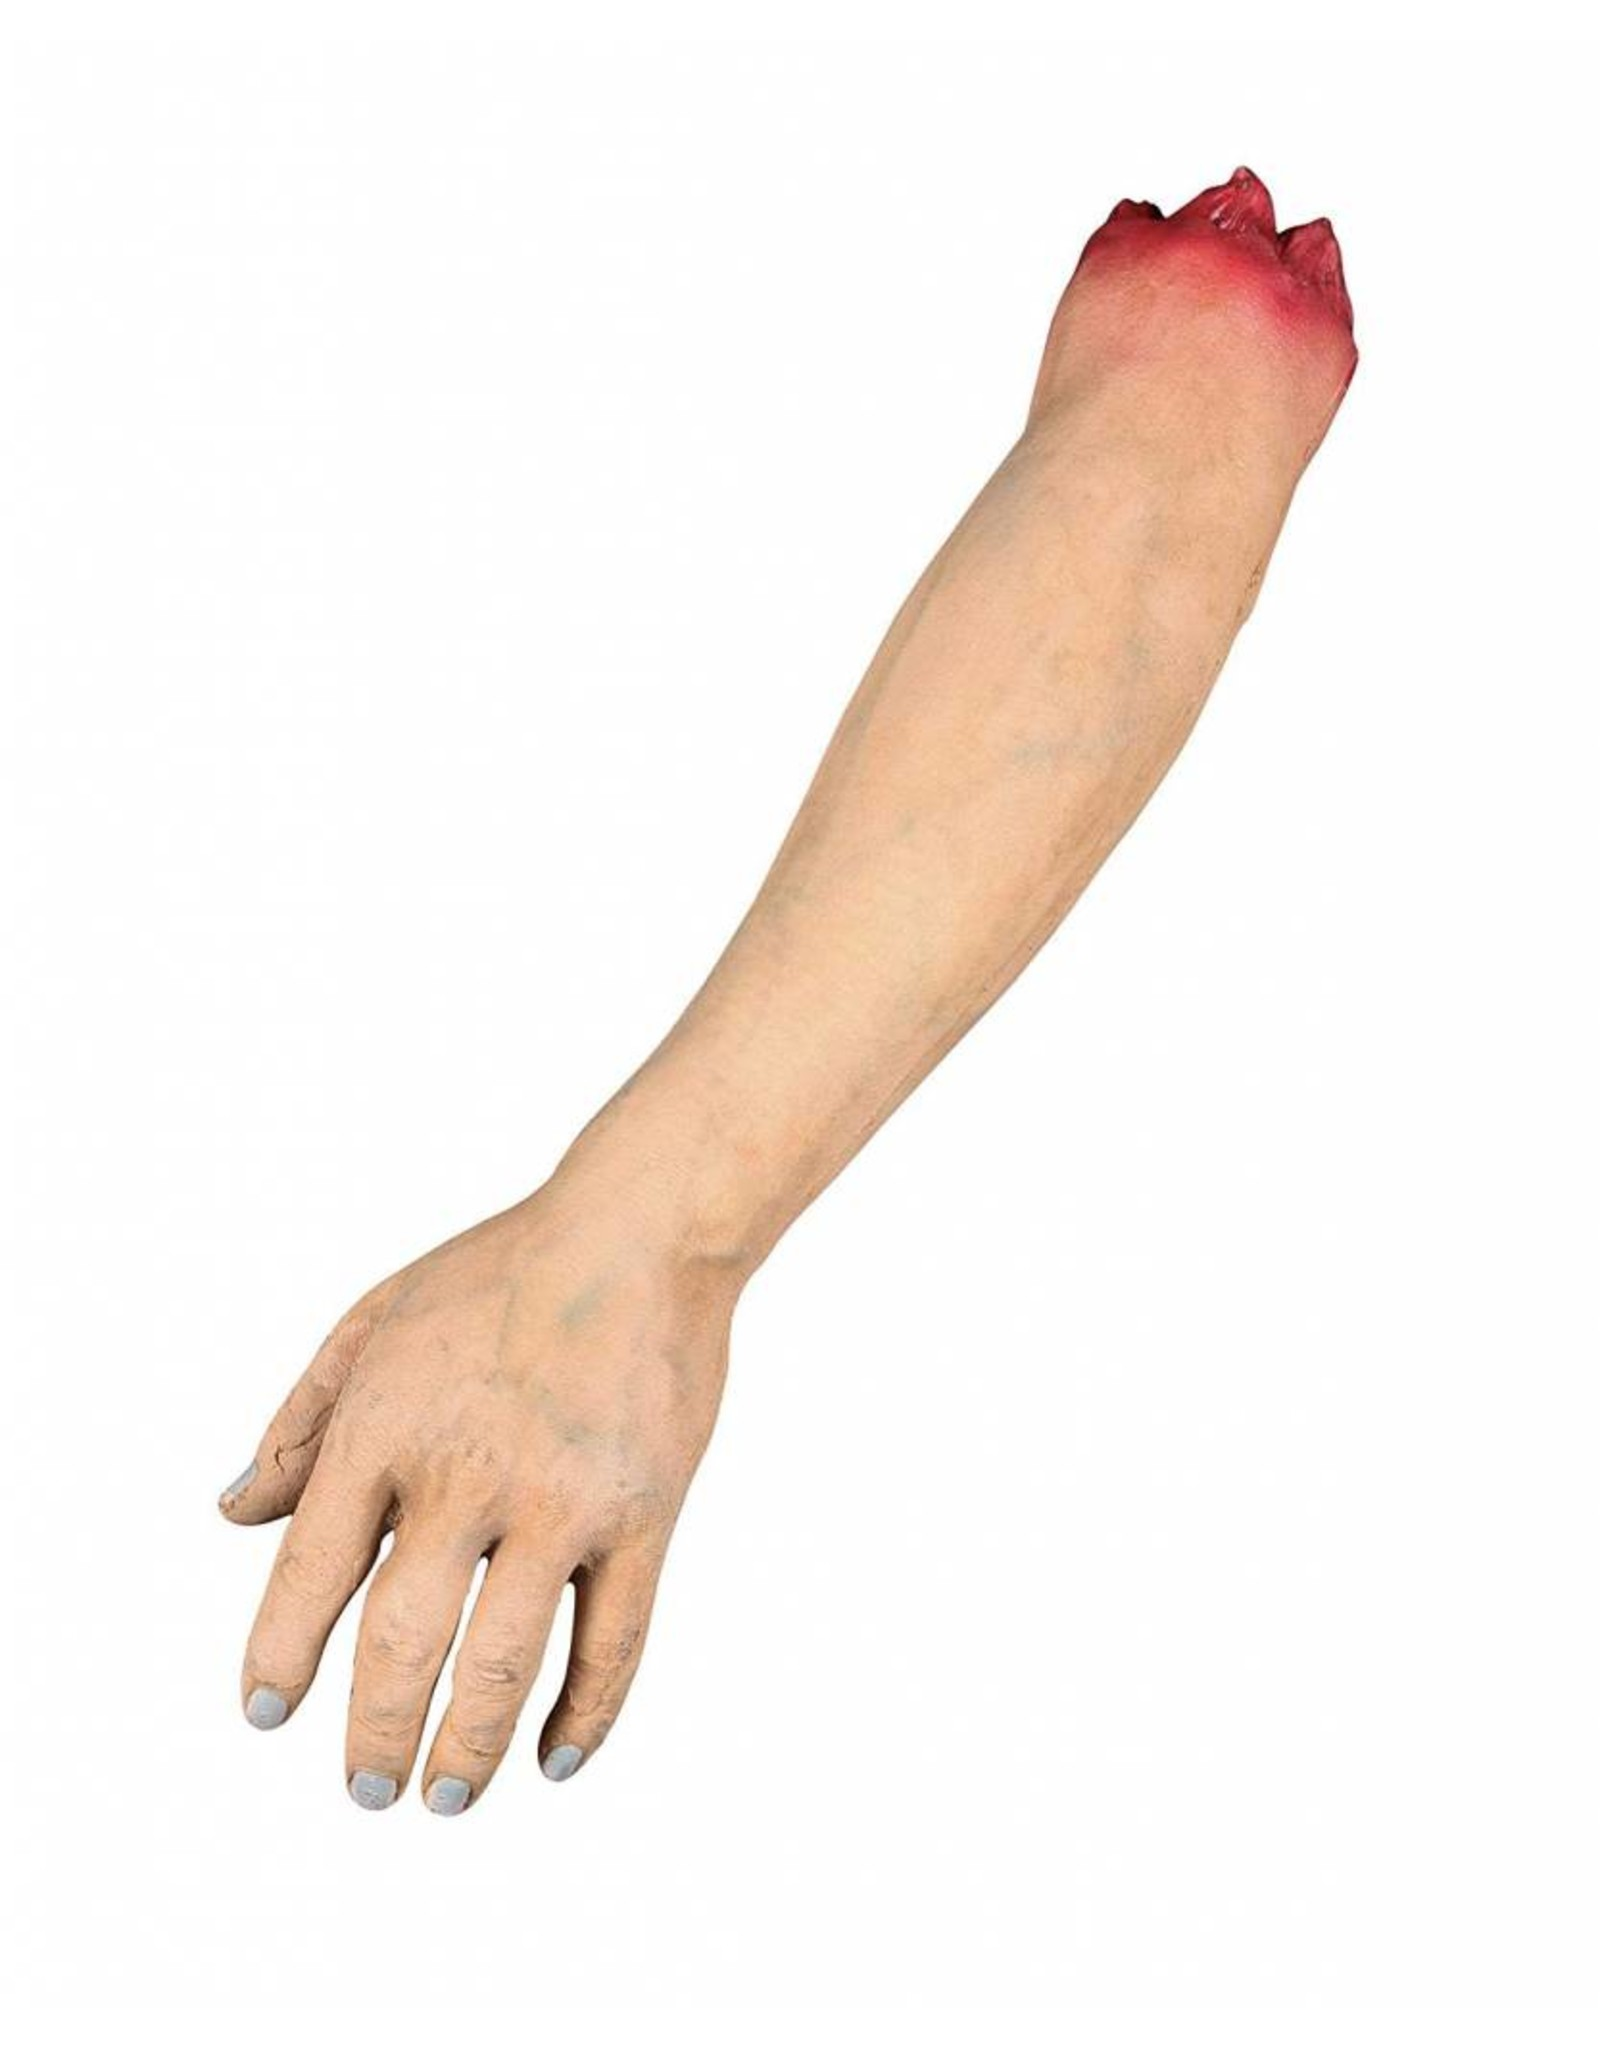 Seasons Severed Arm